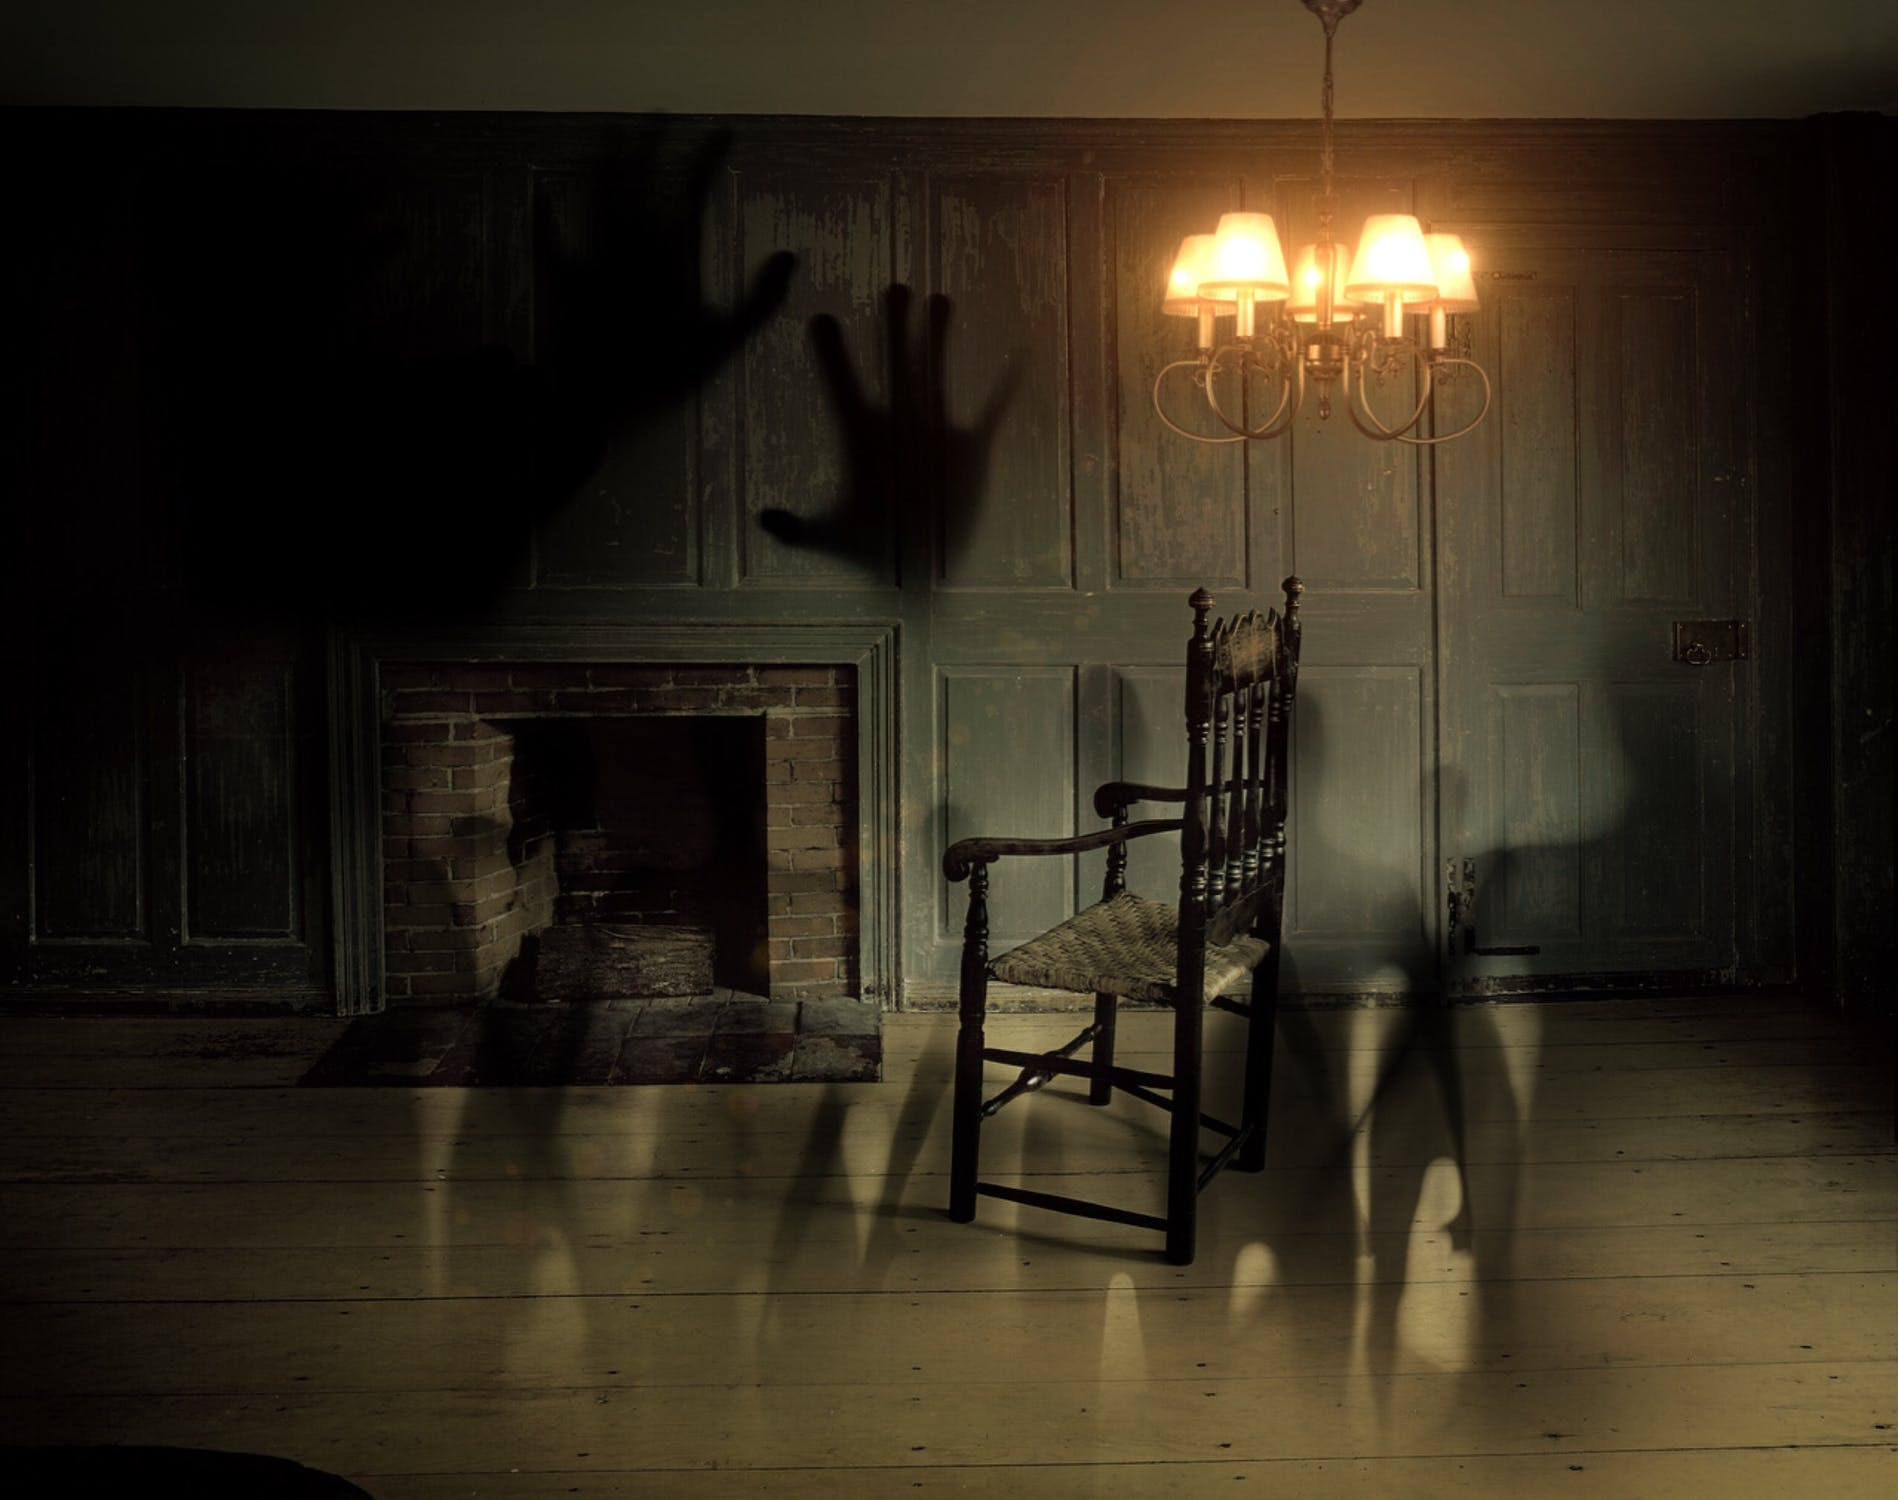 ghosts in room